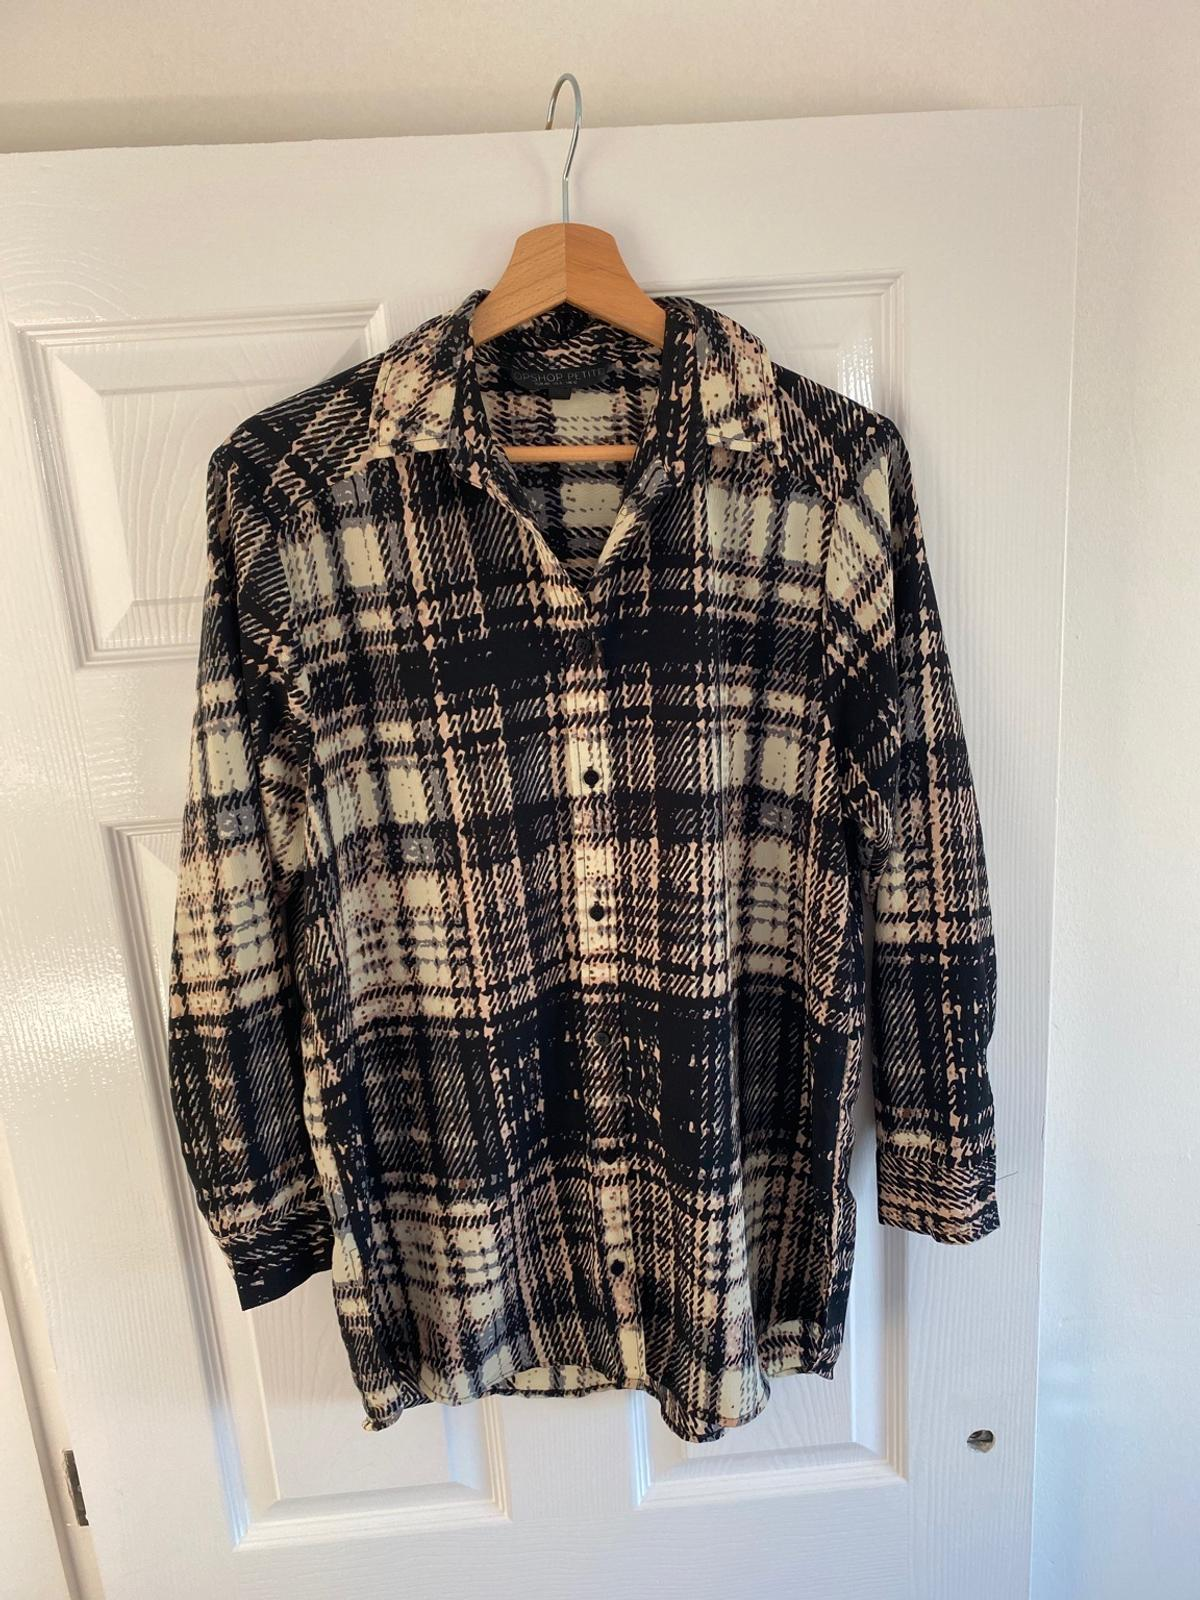 Lovely blouse from top shop. Used but in great condition